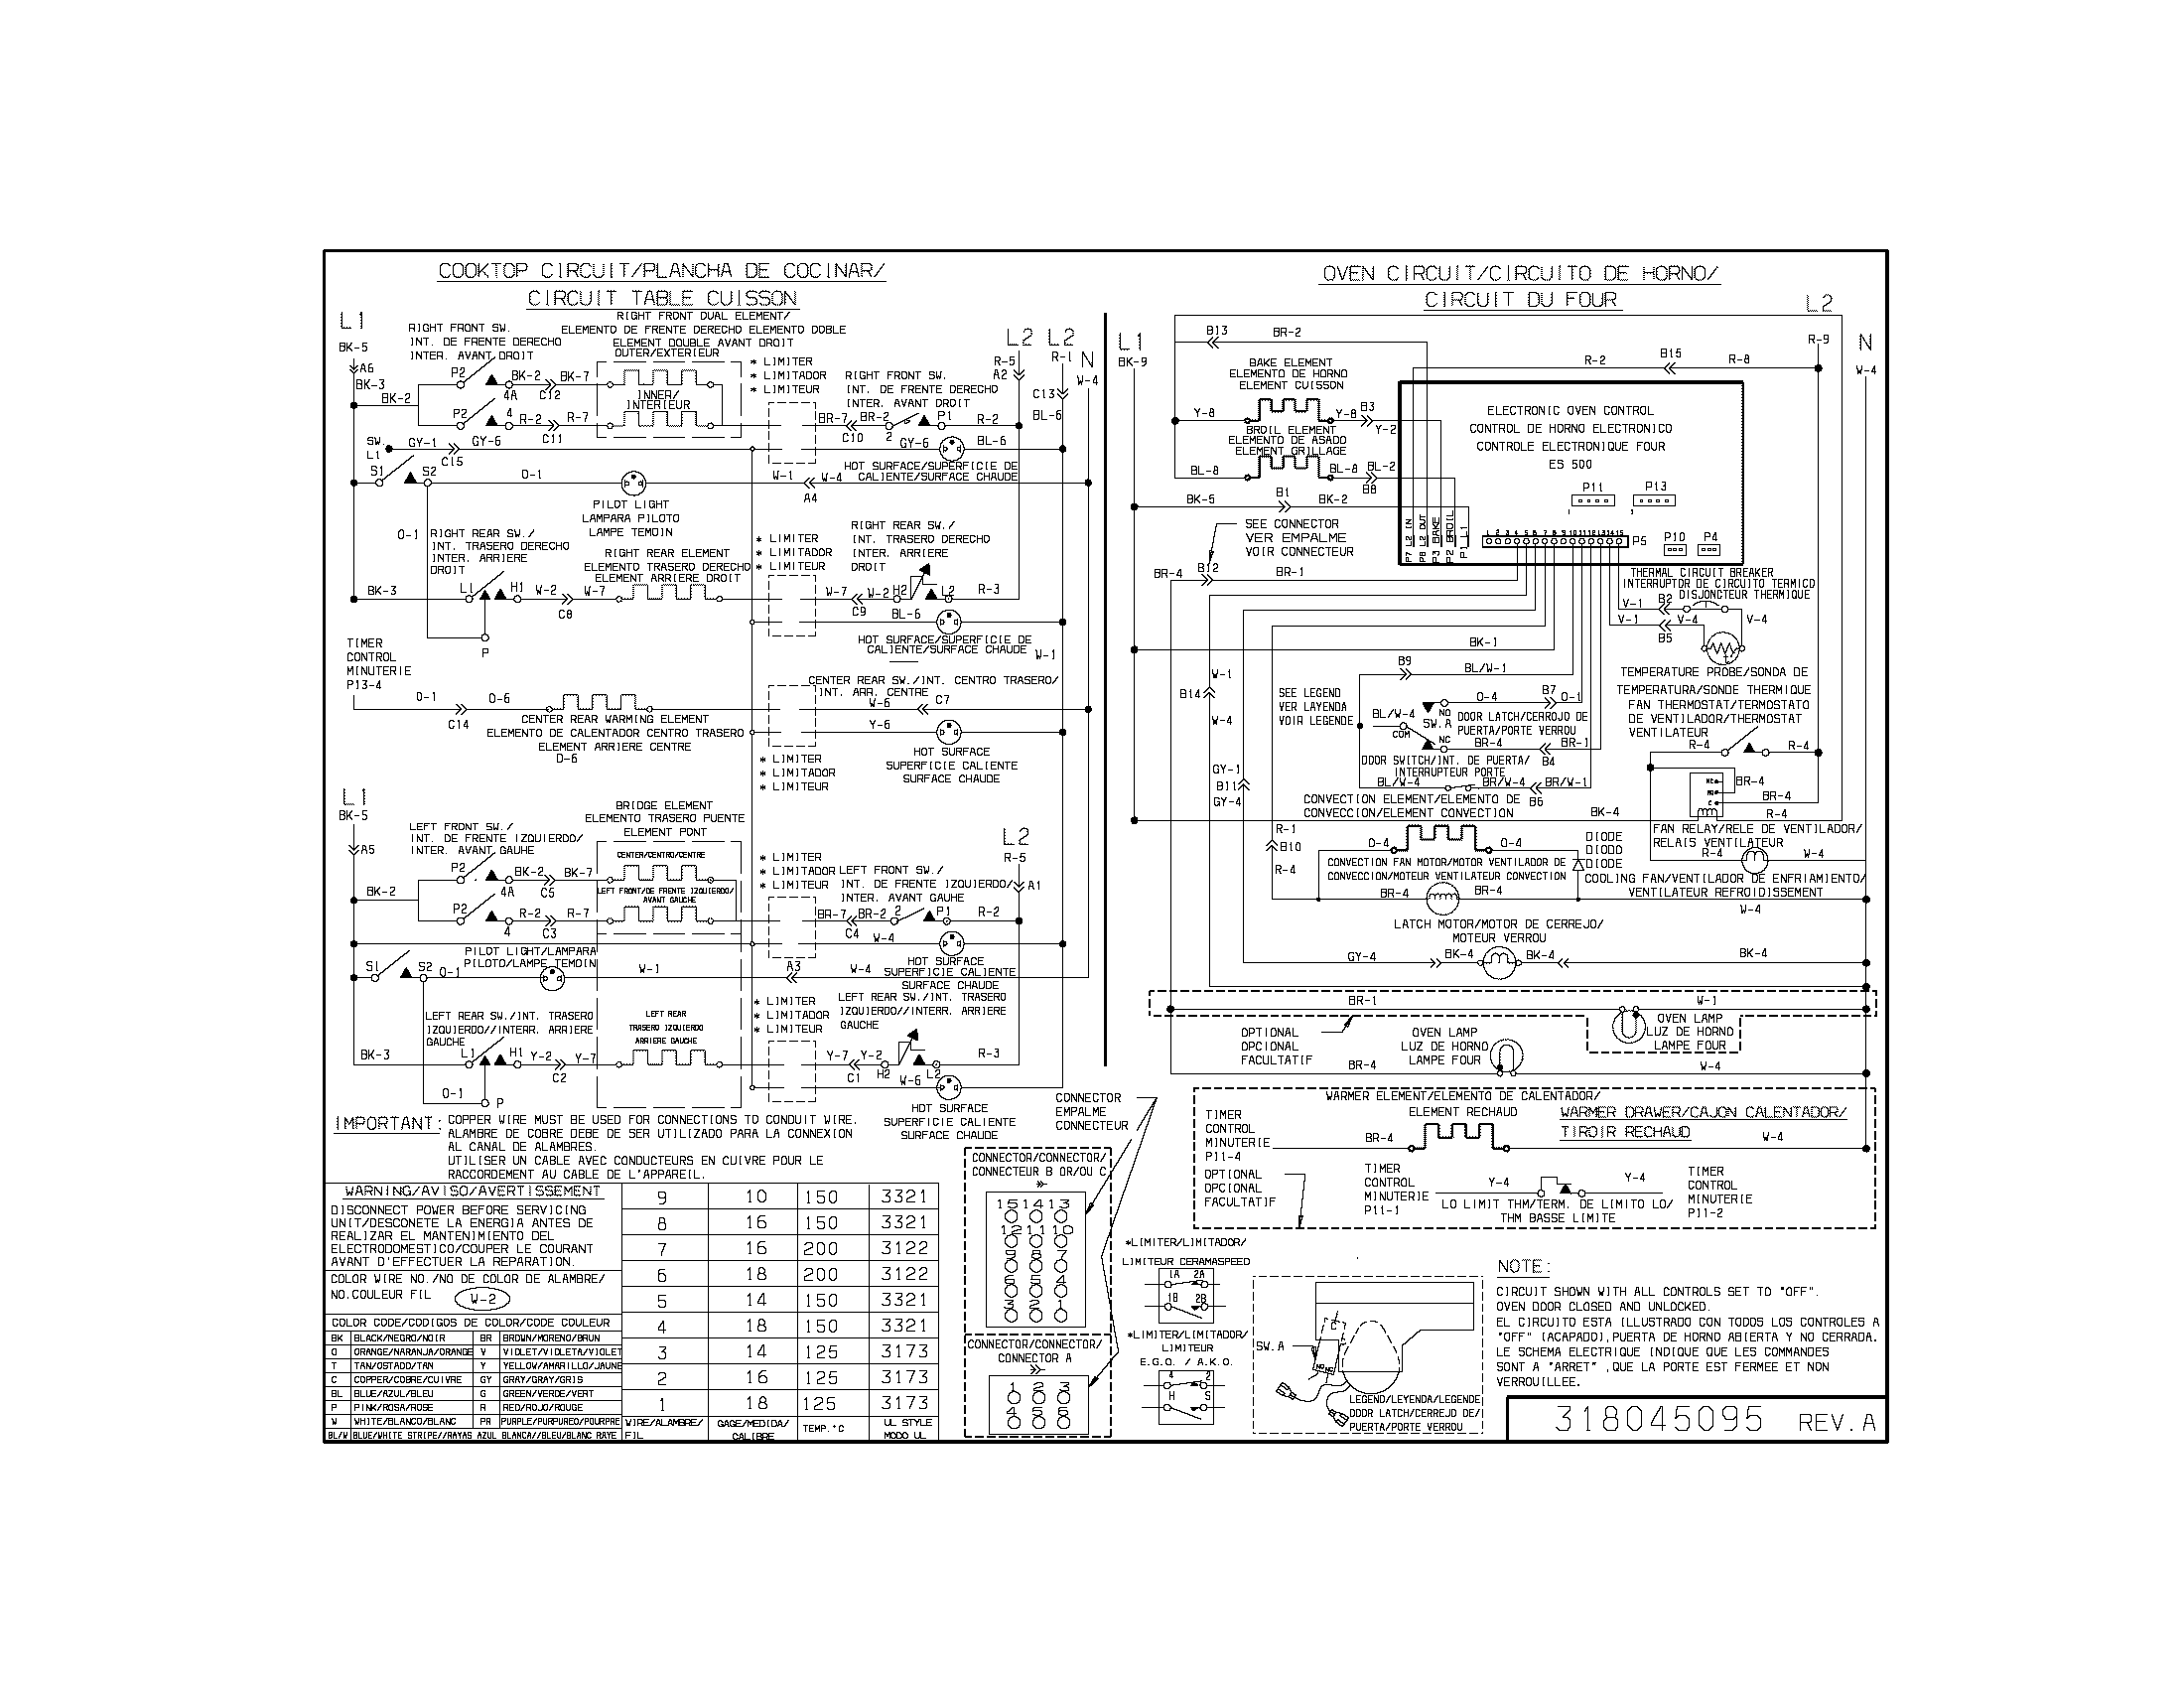 wiring diagram parts download repair manual pdf do chilton manuals have wiring diagrams at reclaimingppi.co